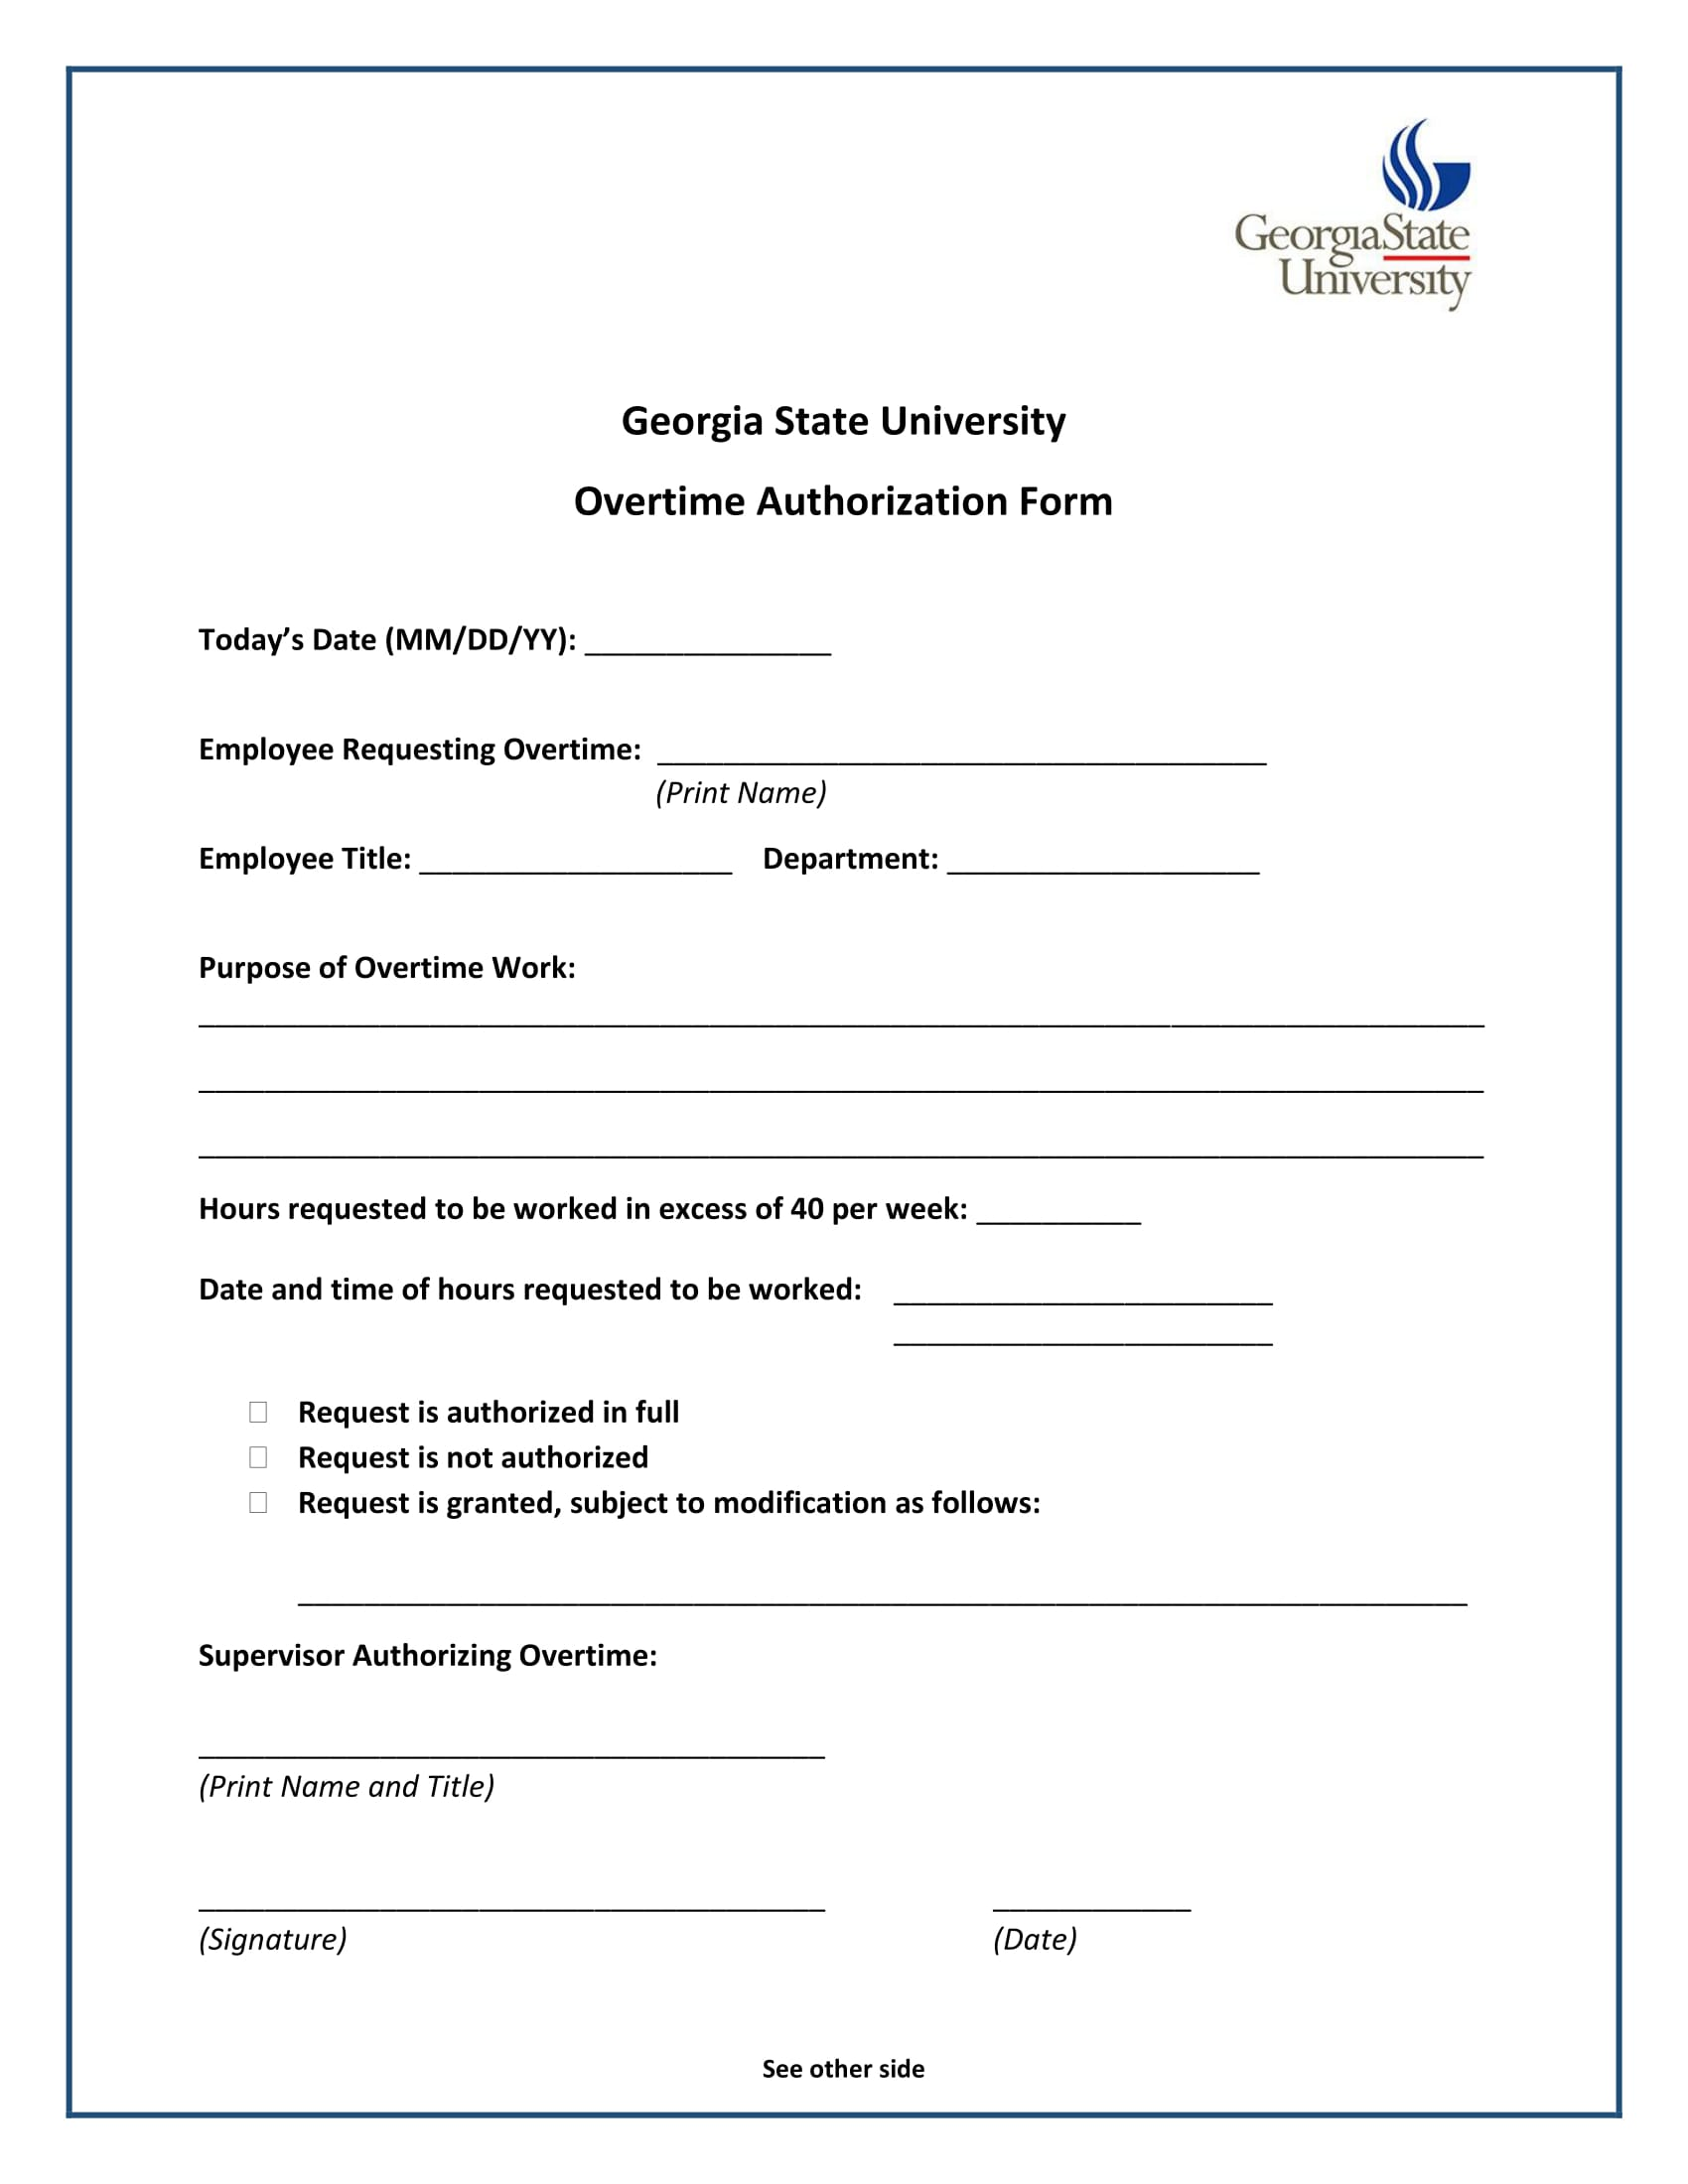 university employee overtime authorization form 1